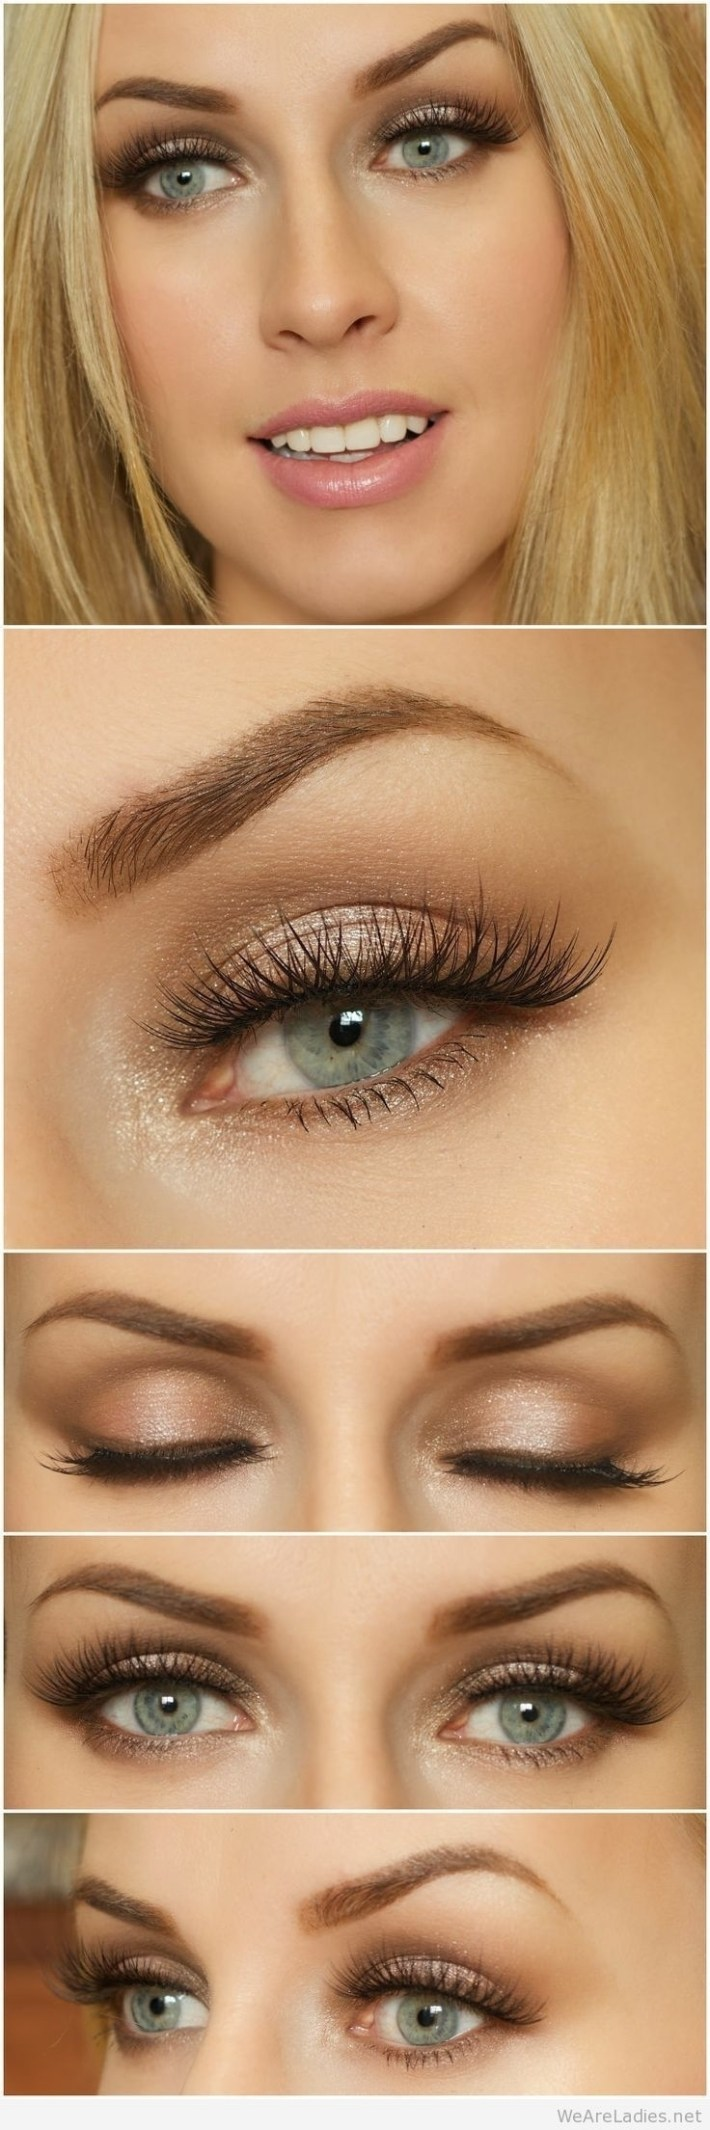 Makeup Colors For Blue Eyes And Dirty Blonde Hair – Wavy Haircut pertaining to What Color Eyeshadow For Blue Eyes And Dirty Blonde Hair